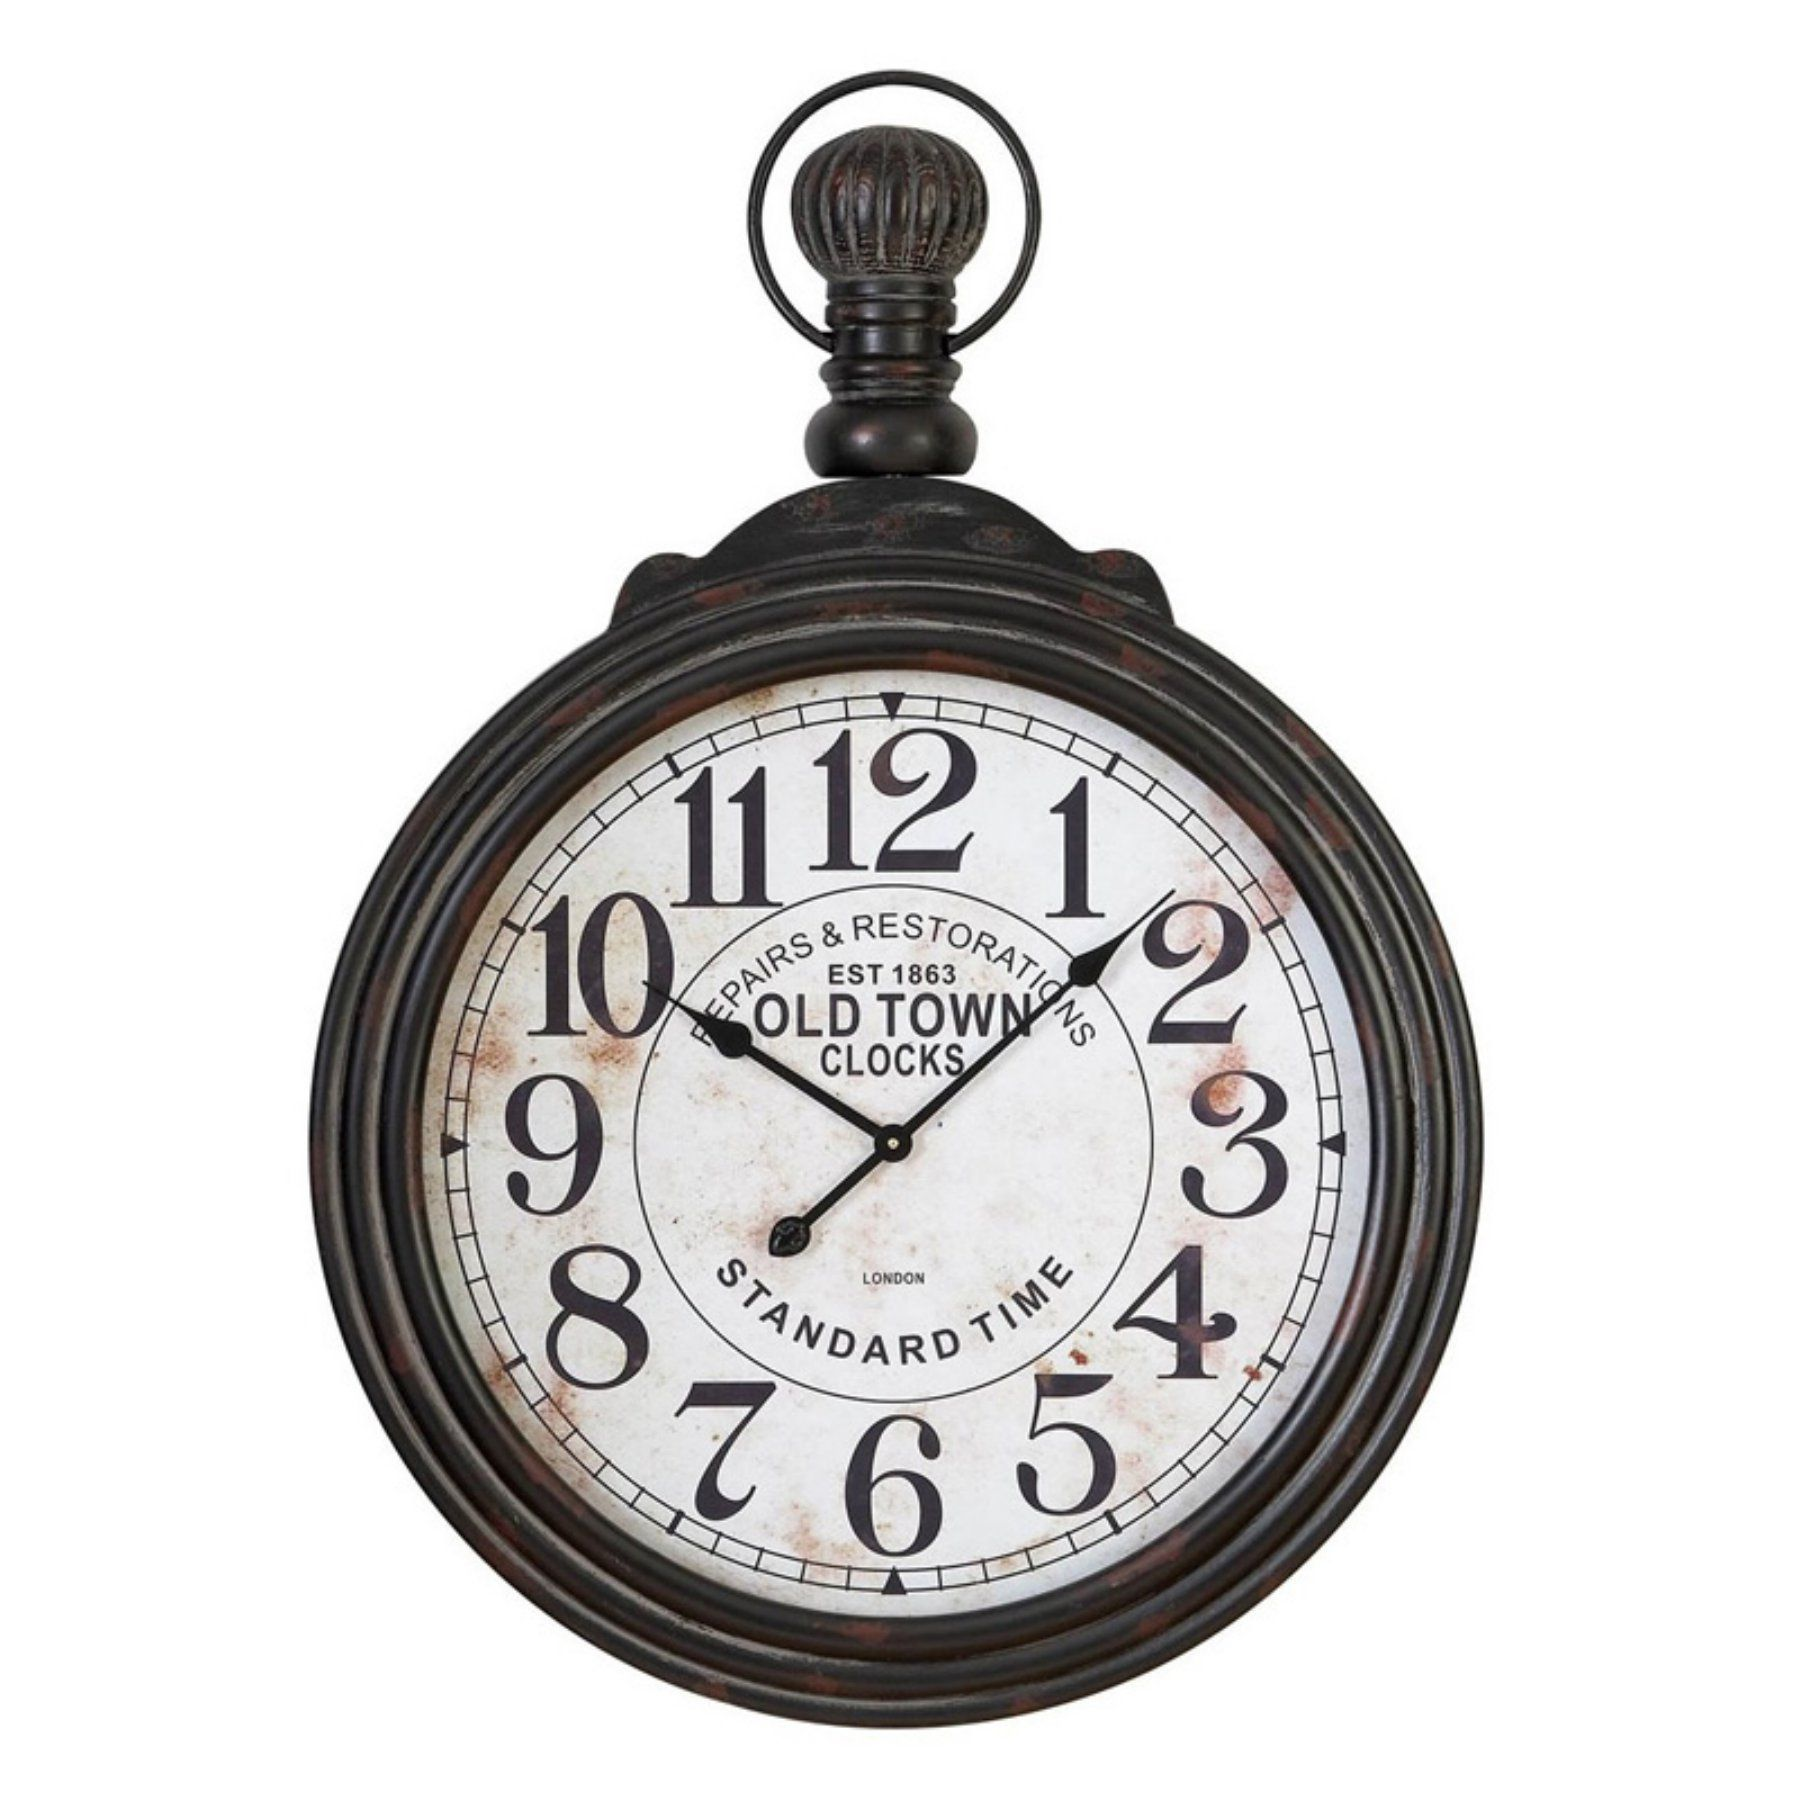 Home accents large pocket watch style wall clock 28 in wide 52107 aspire home accents large pocket watch style wall clock 28 in wide 52107 amipublicfo Images